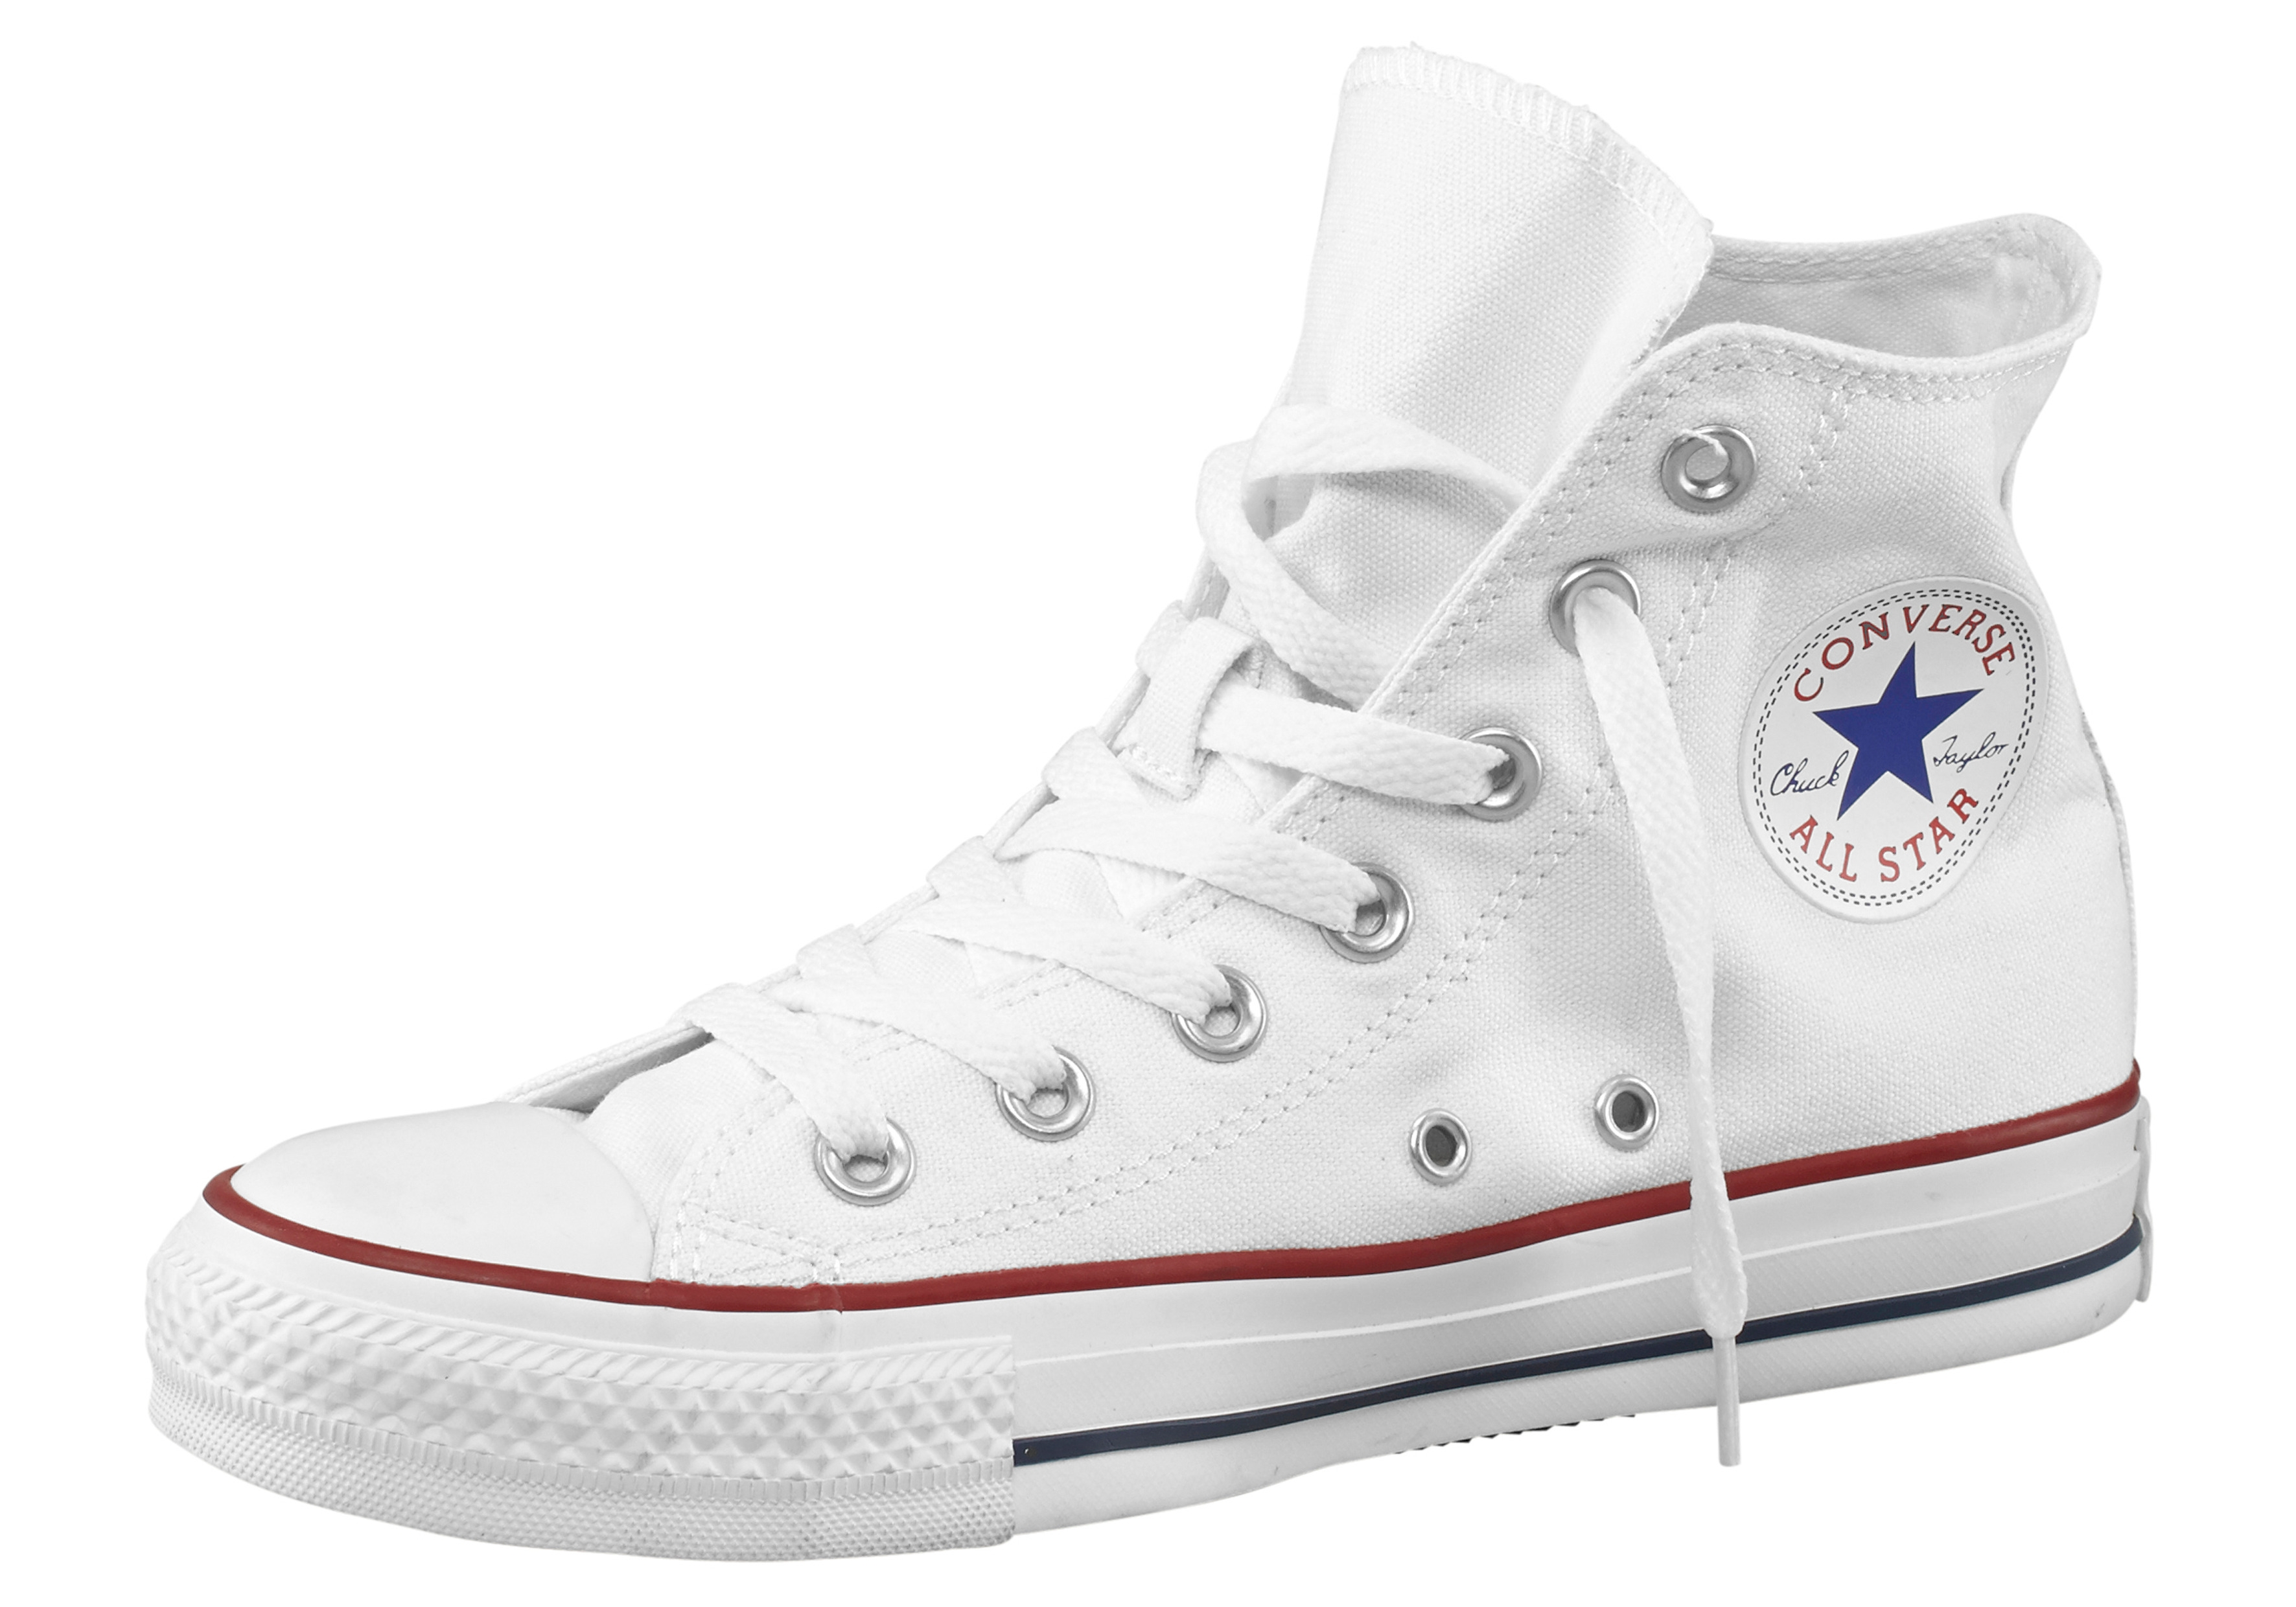 3b168db69ee ... Sneakers Chuck Taylor All Star Core Mono, Converse sneakers »Chuck  Taylor All Star Ox U«, Converse sneakers »Chuck Taylor All Star High Street  Hi«, ...